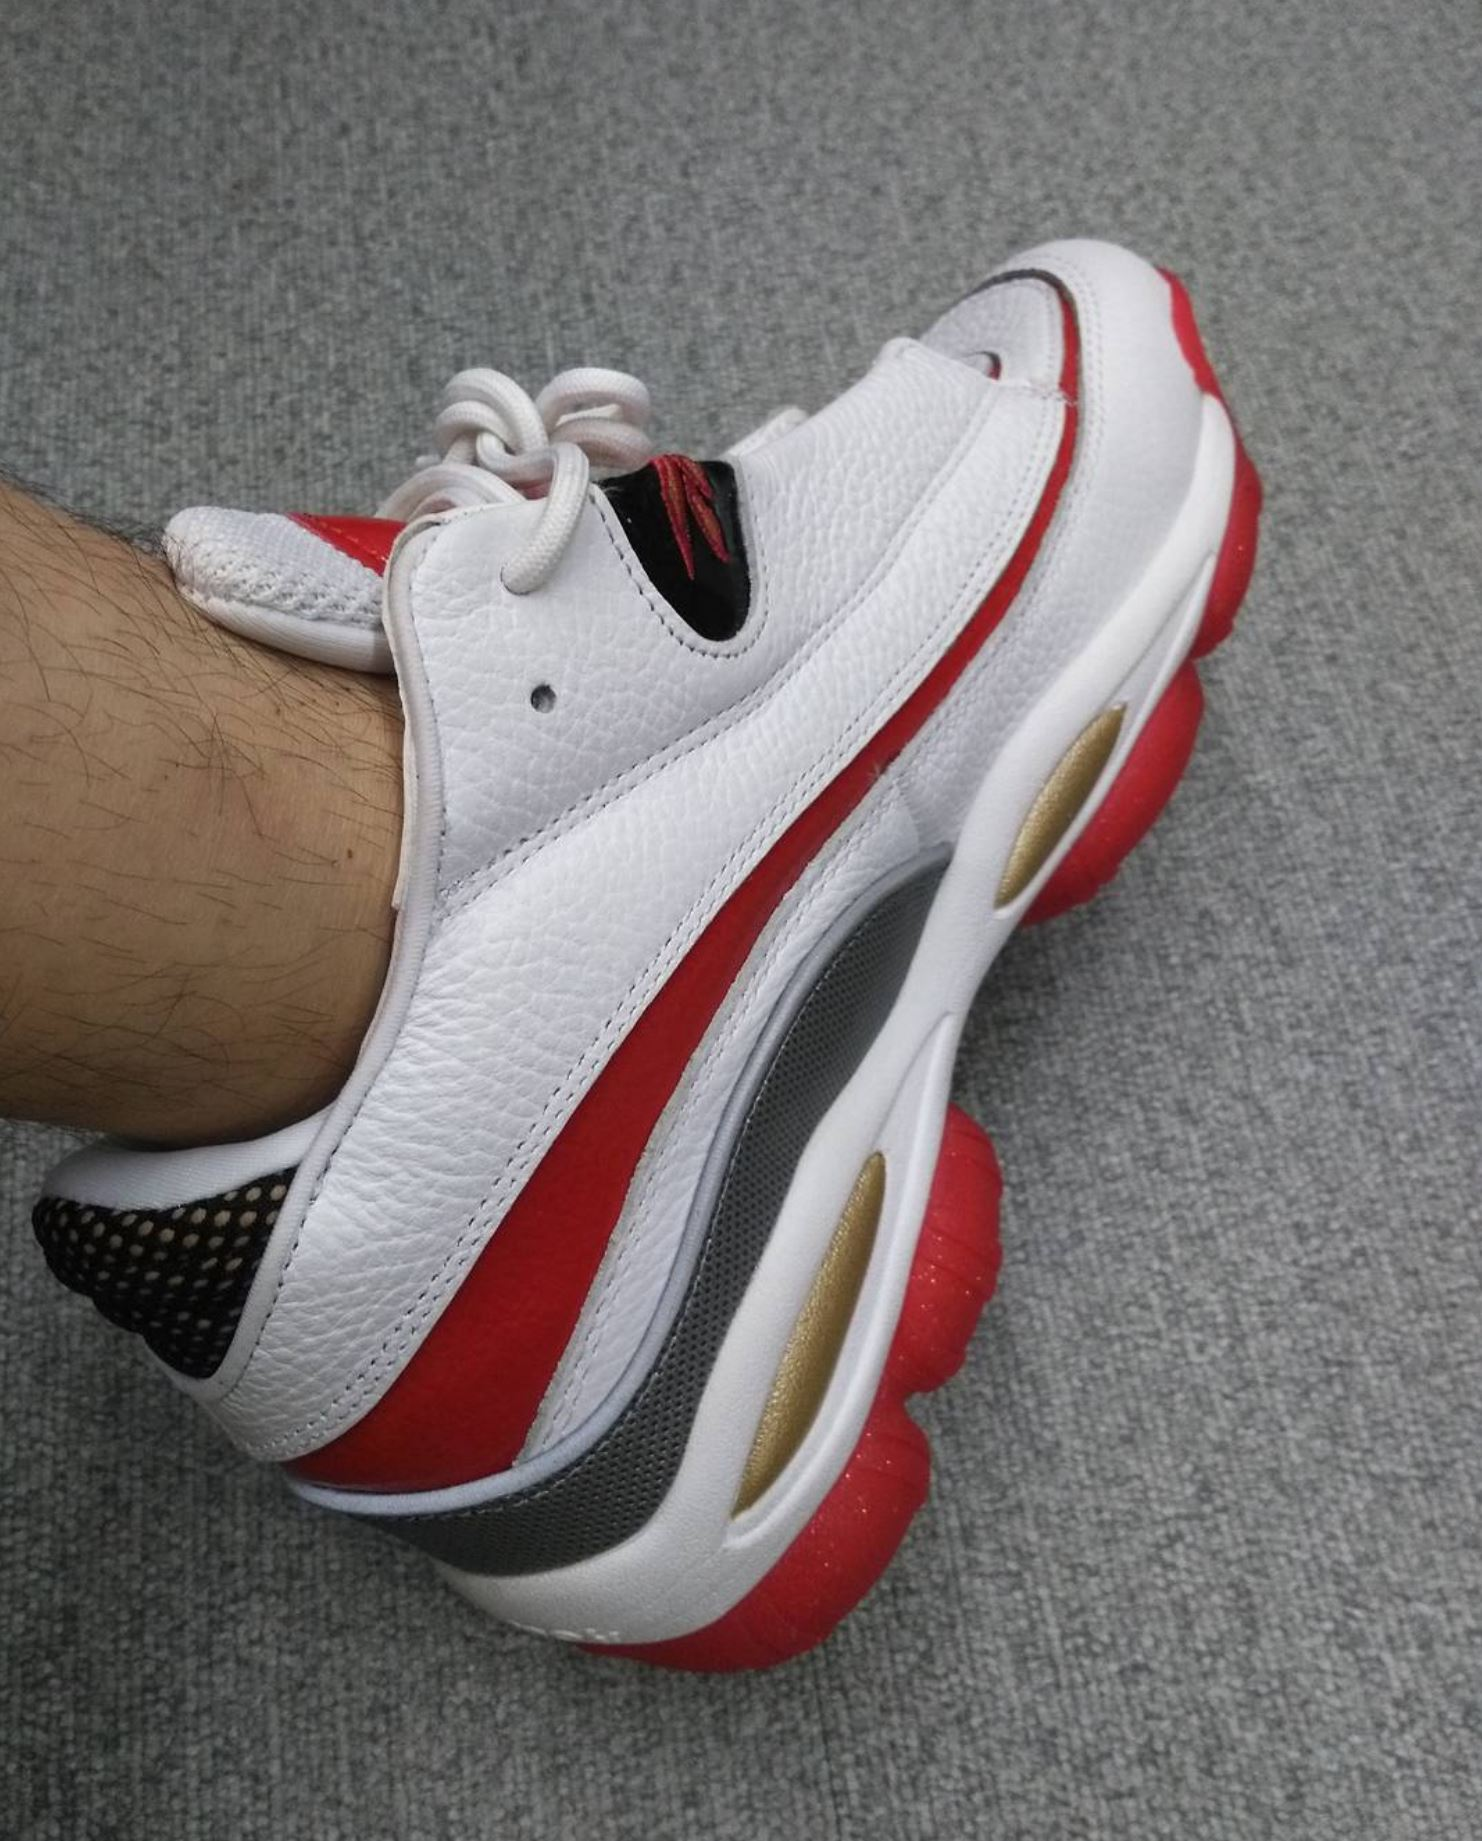 reebok answer 1 white red on foot - WearTesters